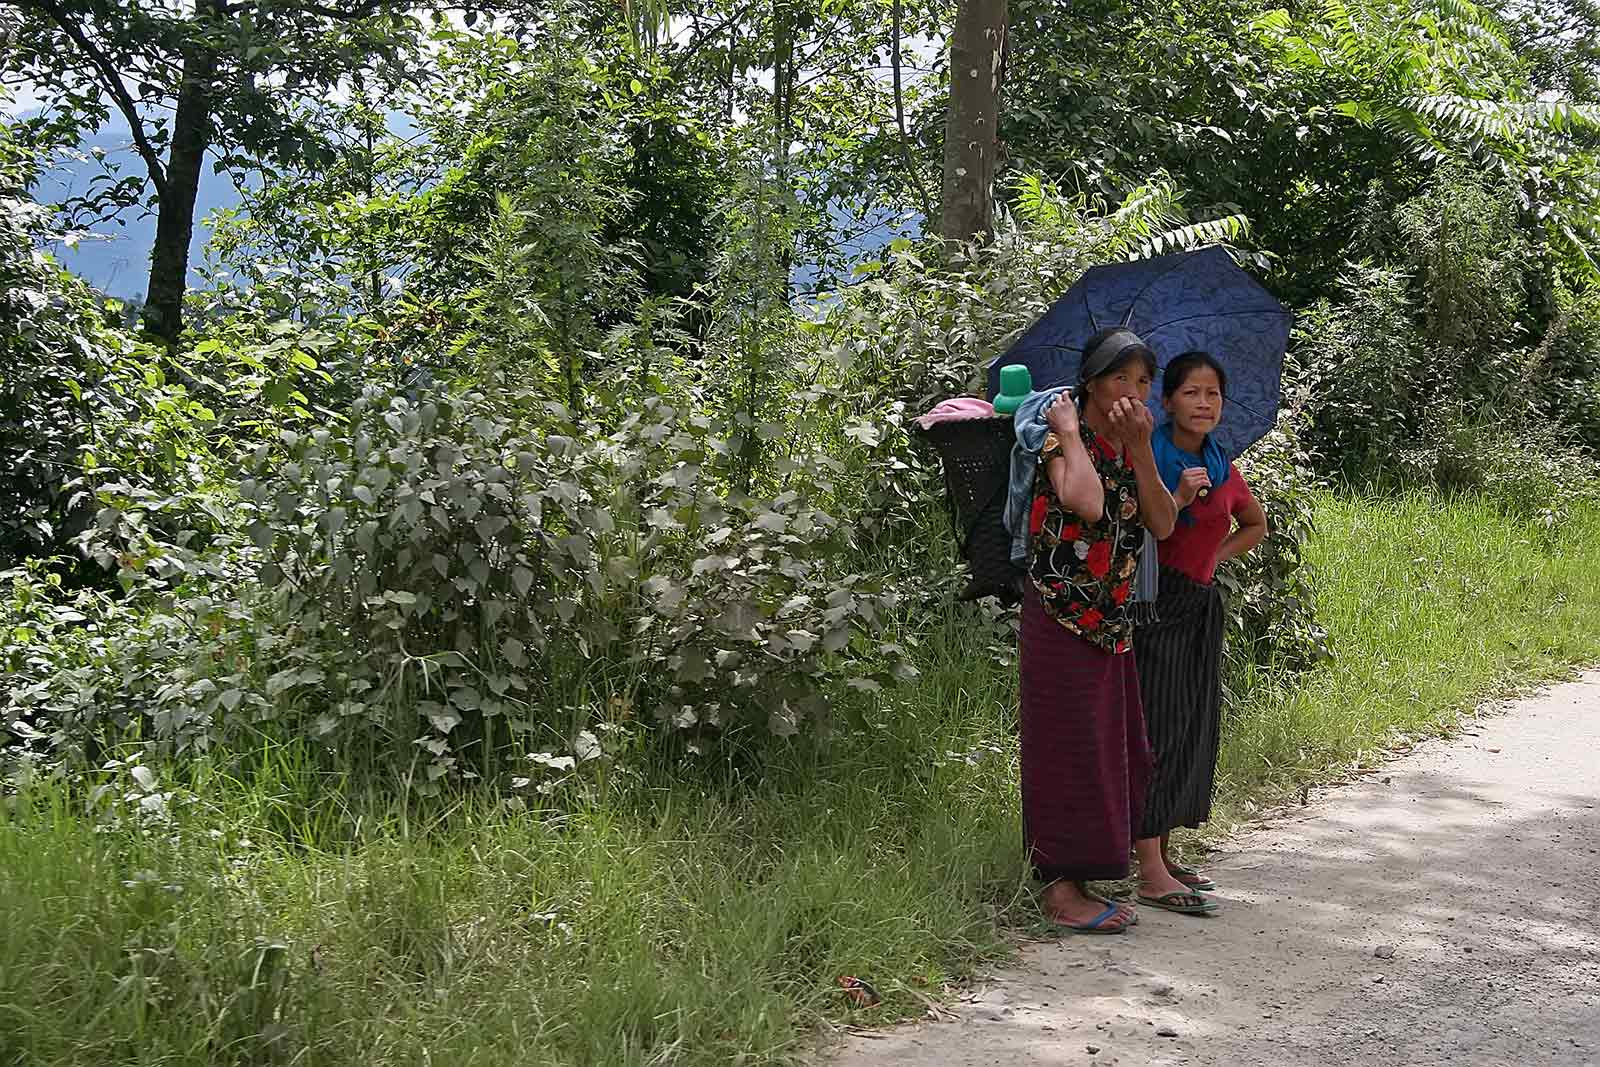 Women waiting for customers on the side of the road.